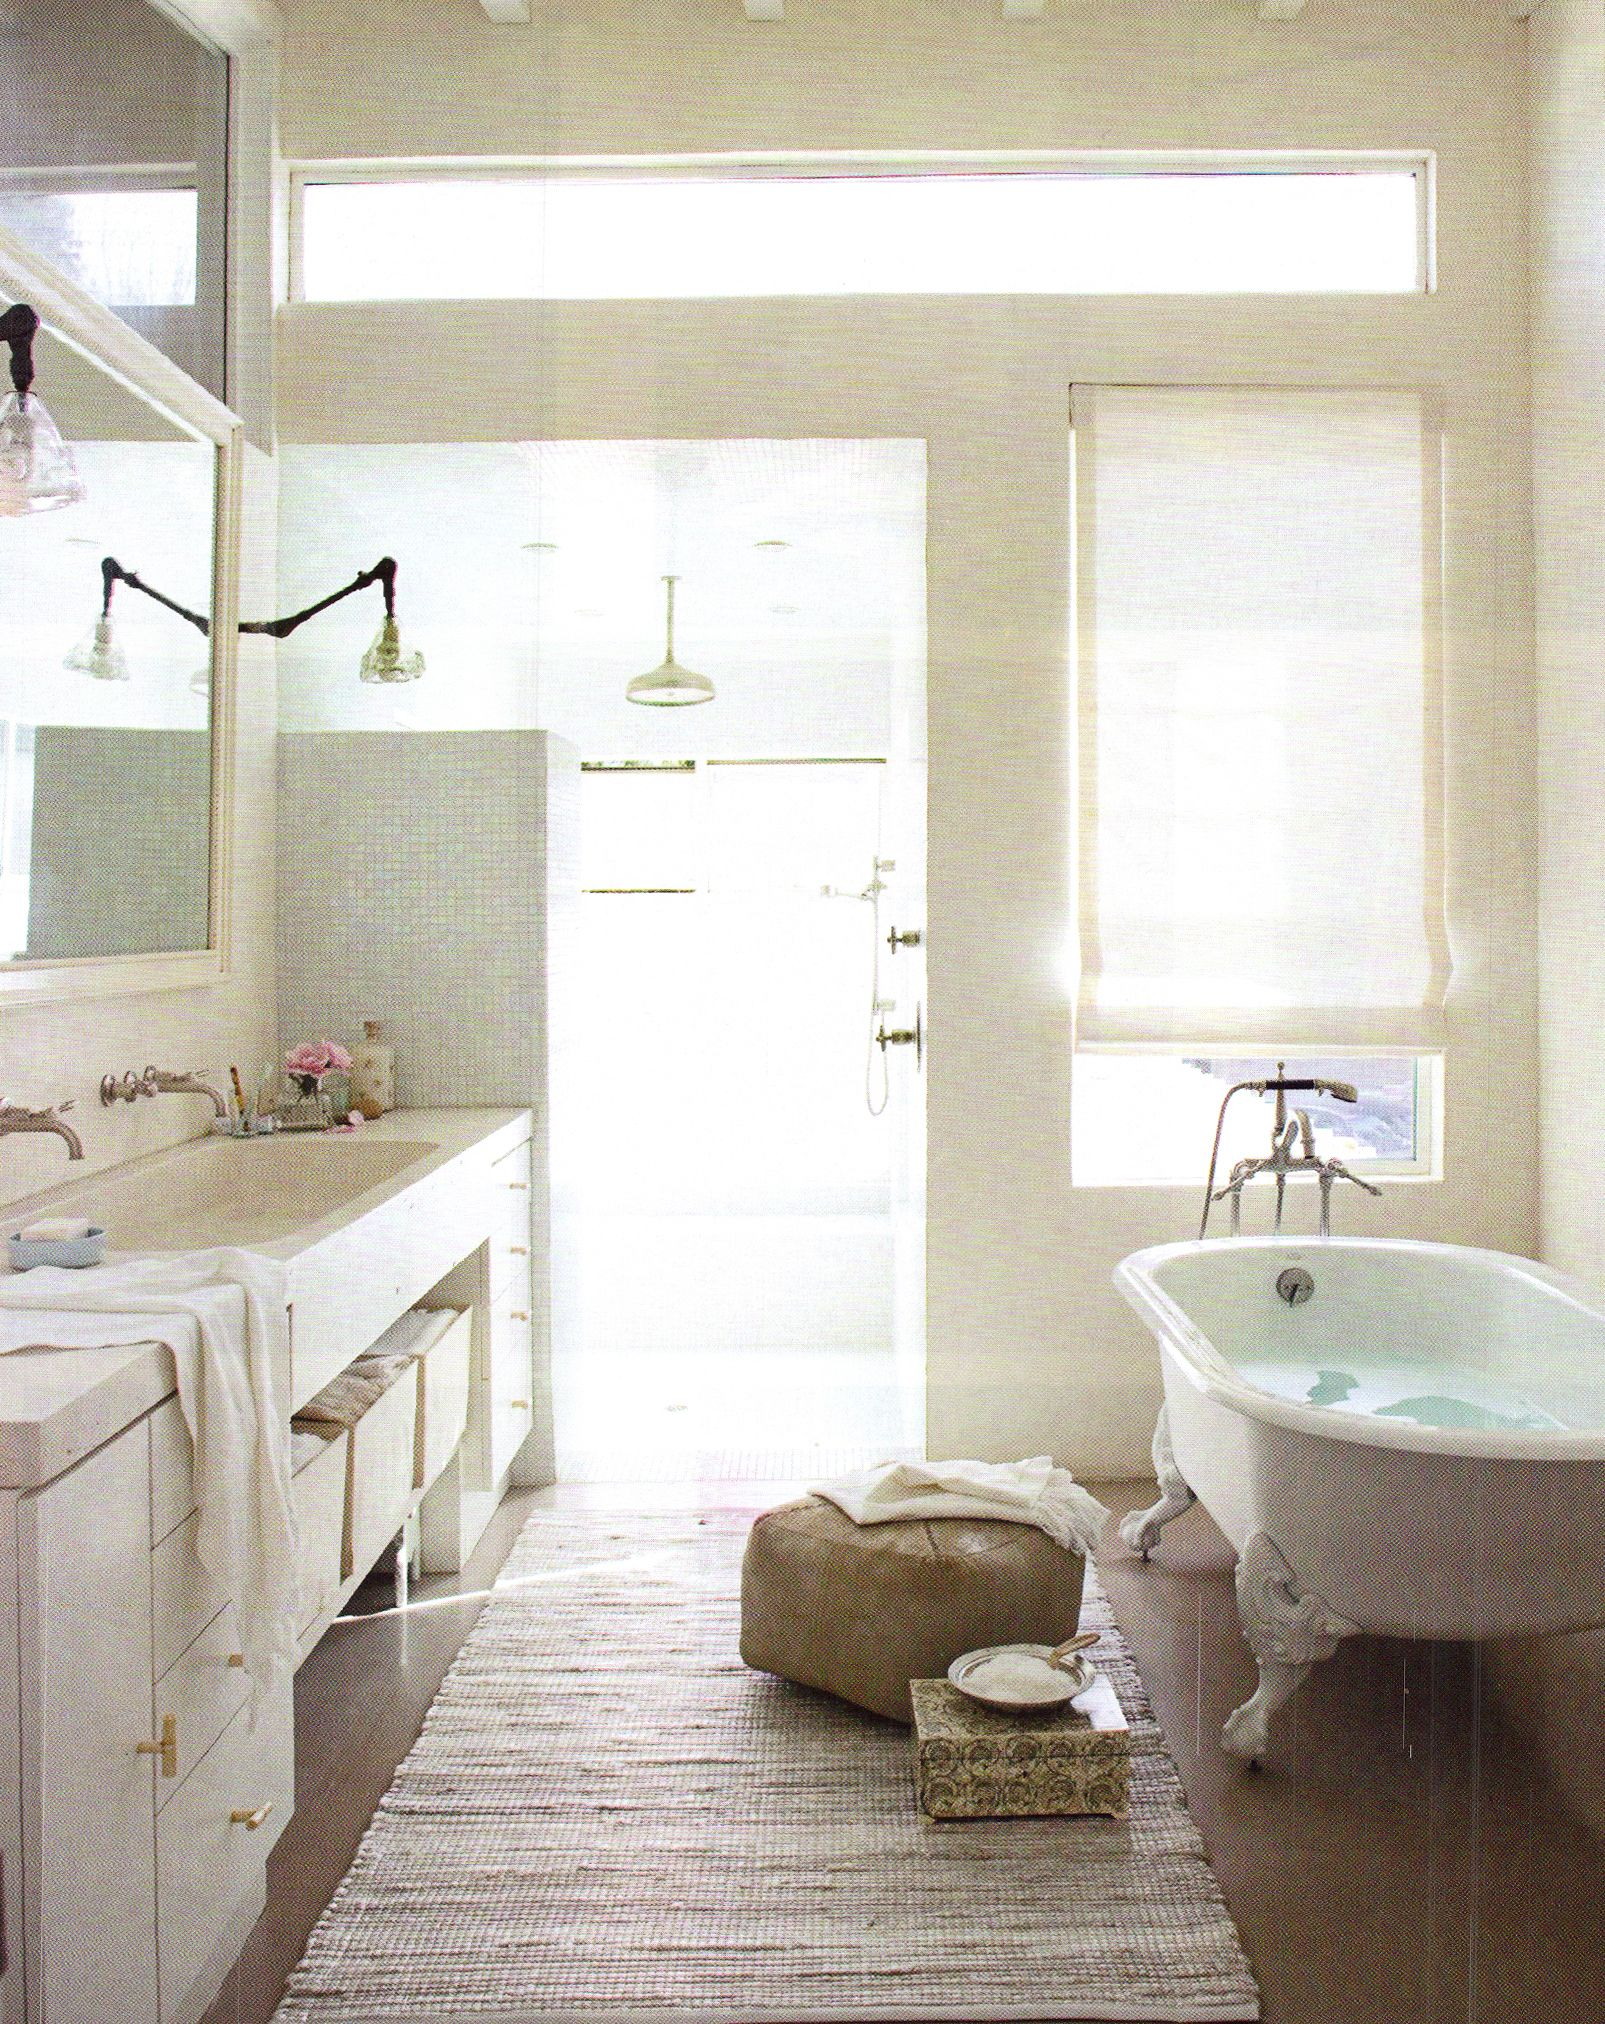 large double sink & clawfoot tub | Bathroom Ideas | Pinterest | Tubs ...